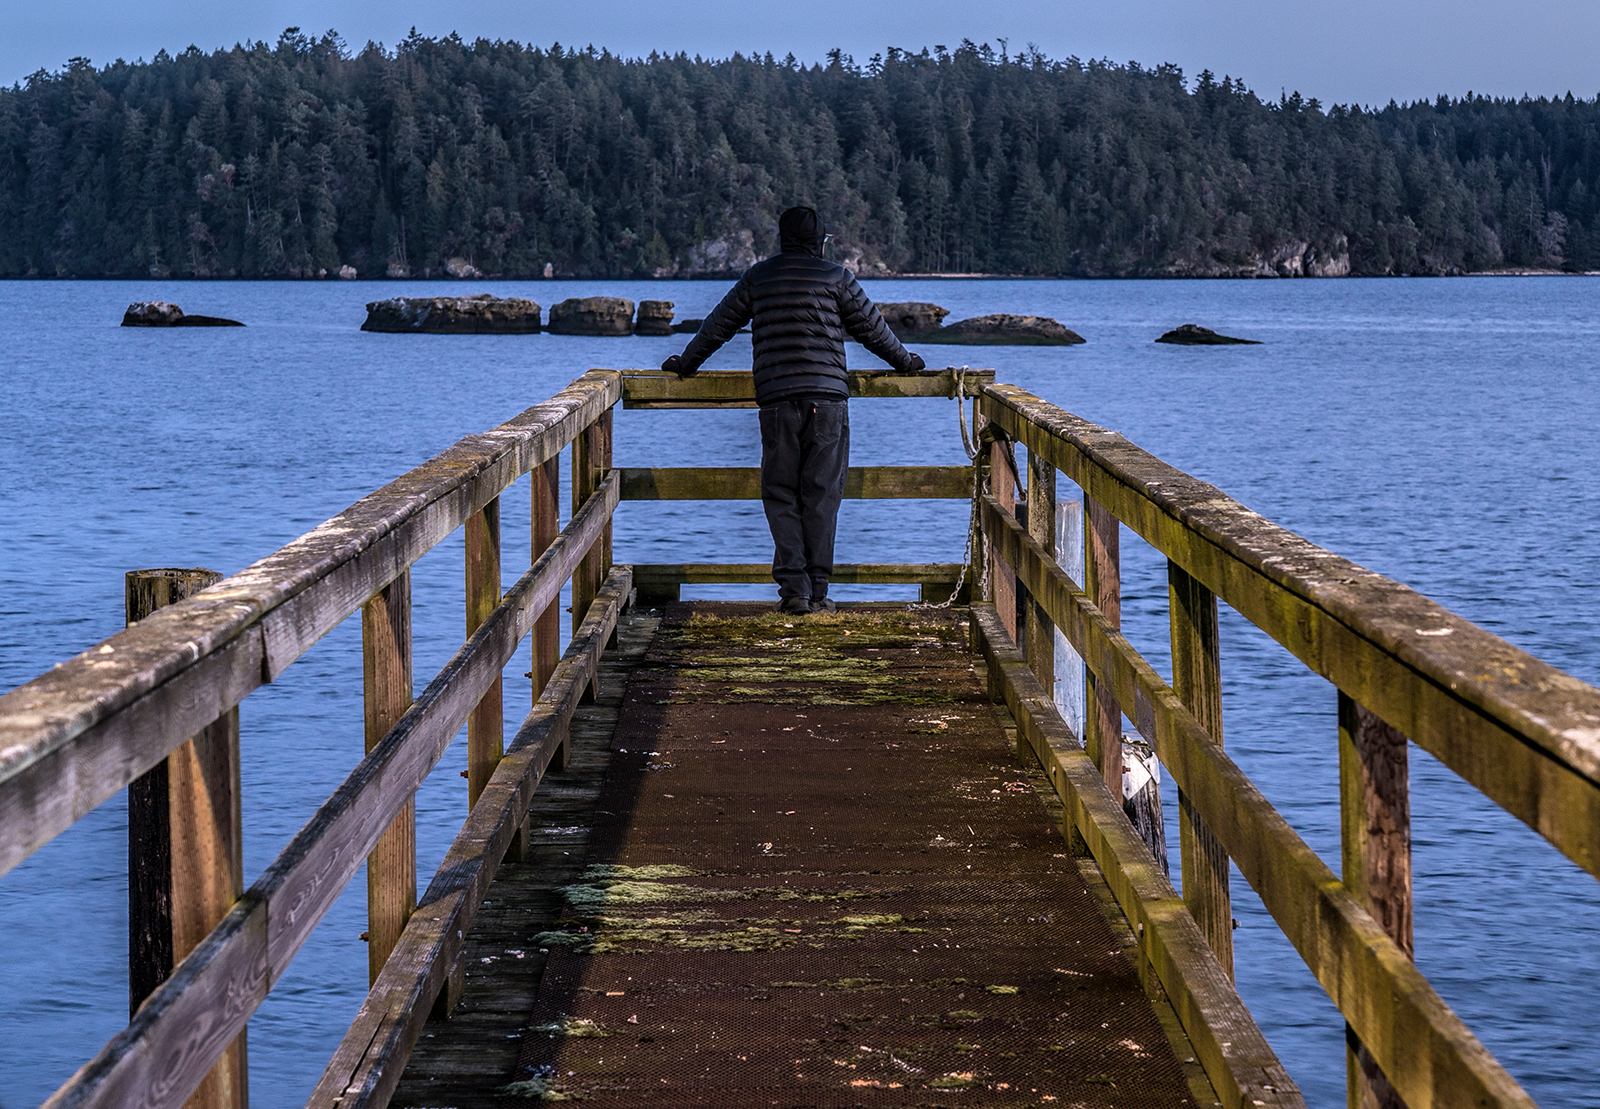 Walk out on a old dock while I'm there with my camera....you just became a dock model